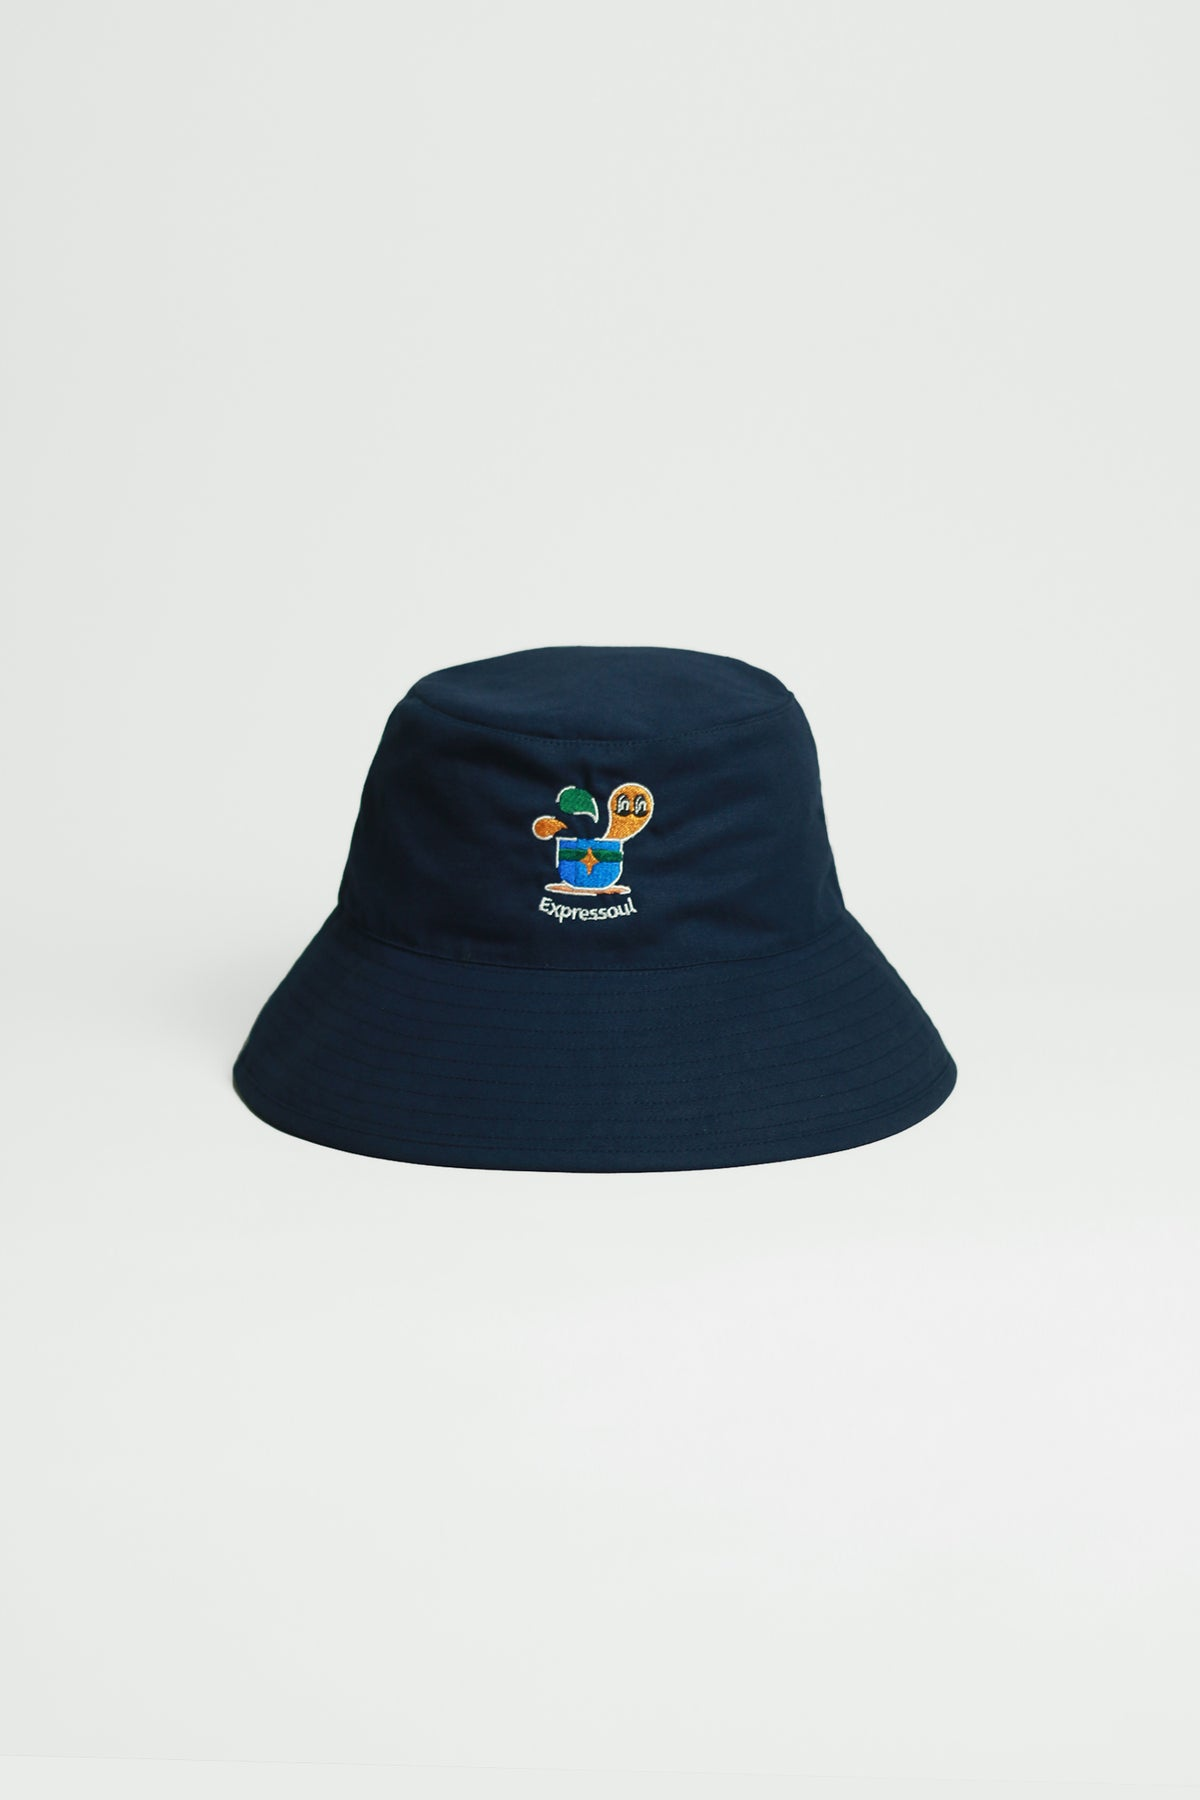 "Graphic Embroidery Tee - ""Expressoul"" Bucket Hat"